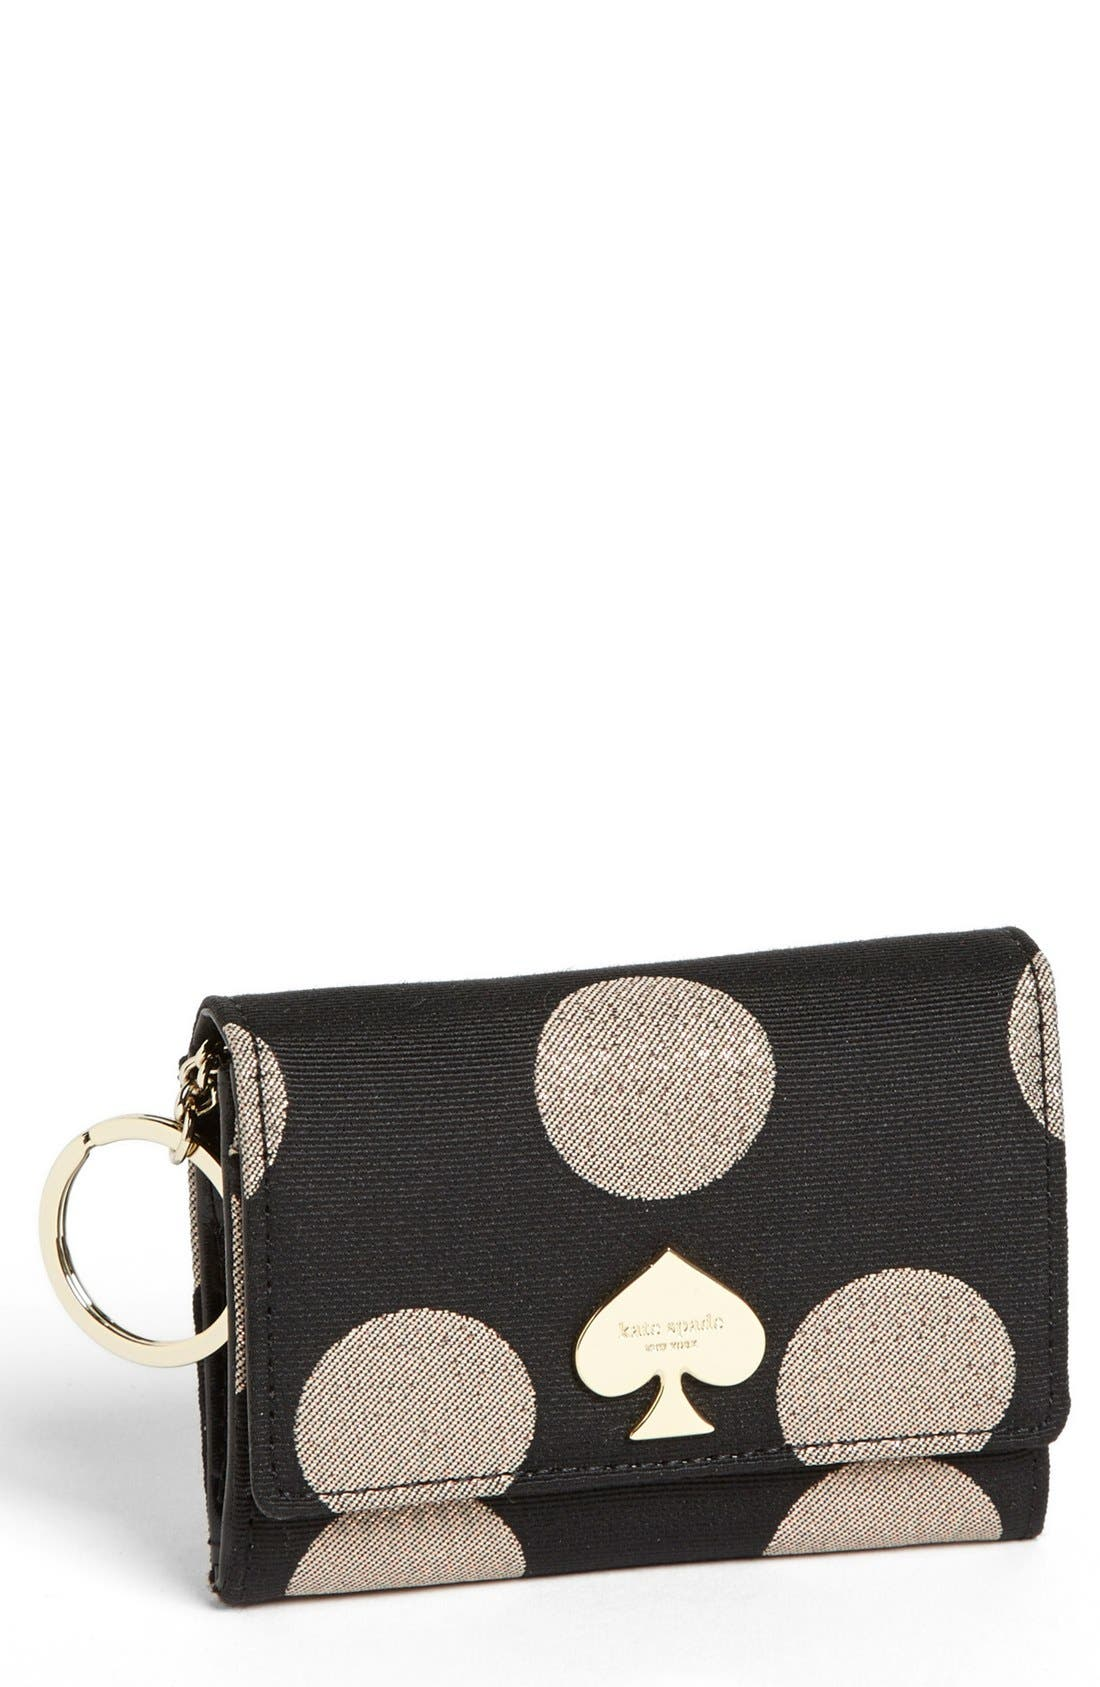 Main Image - kate spade new york 'city slicker - darla' wallet